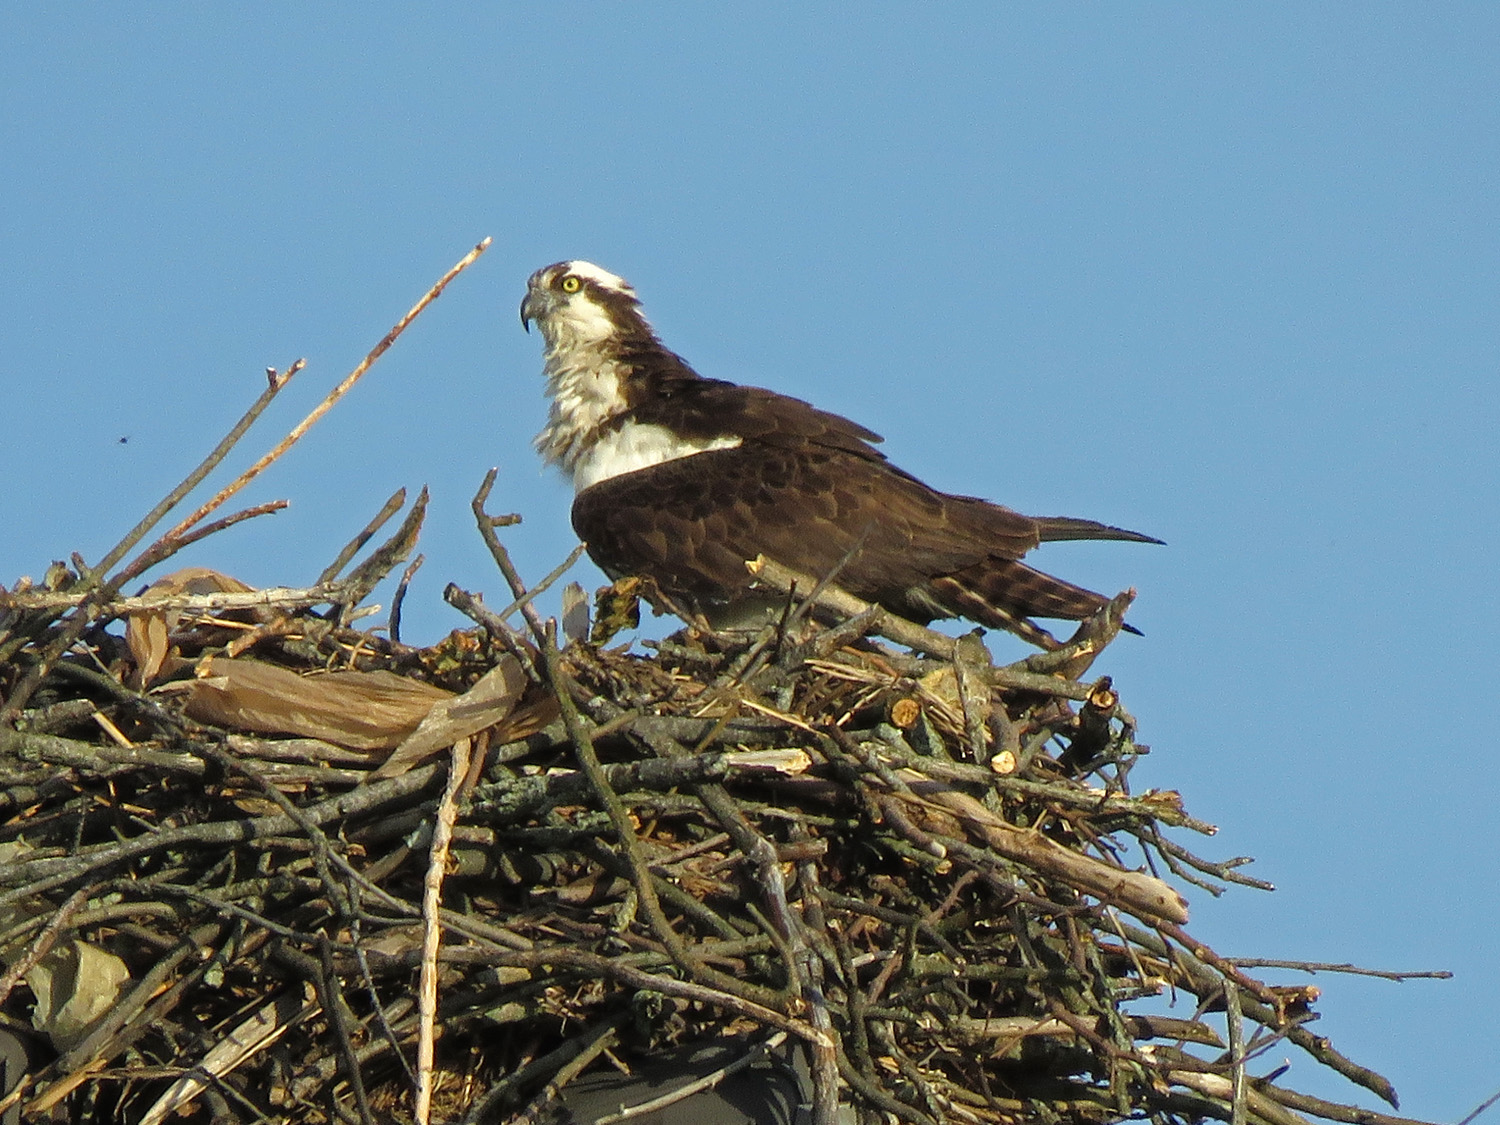 Mama osprey on her nest, Page Avenue, Staten Island, May 22, 2019